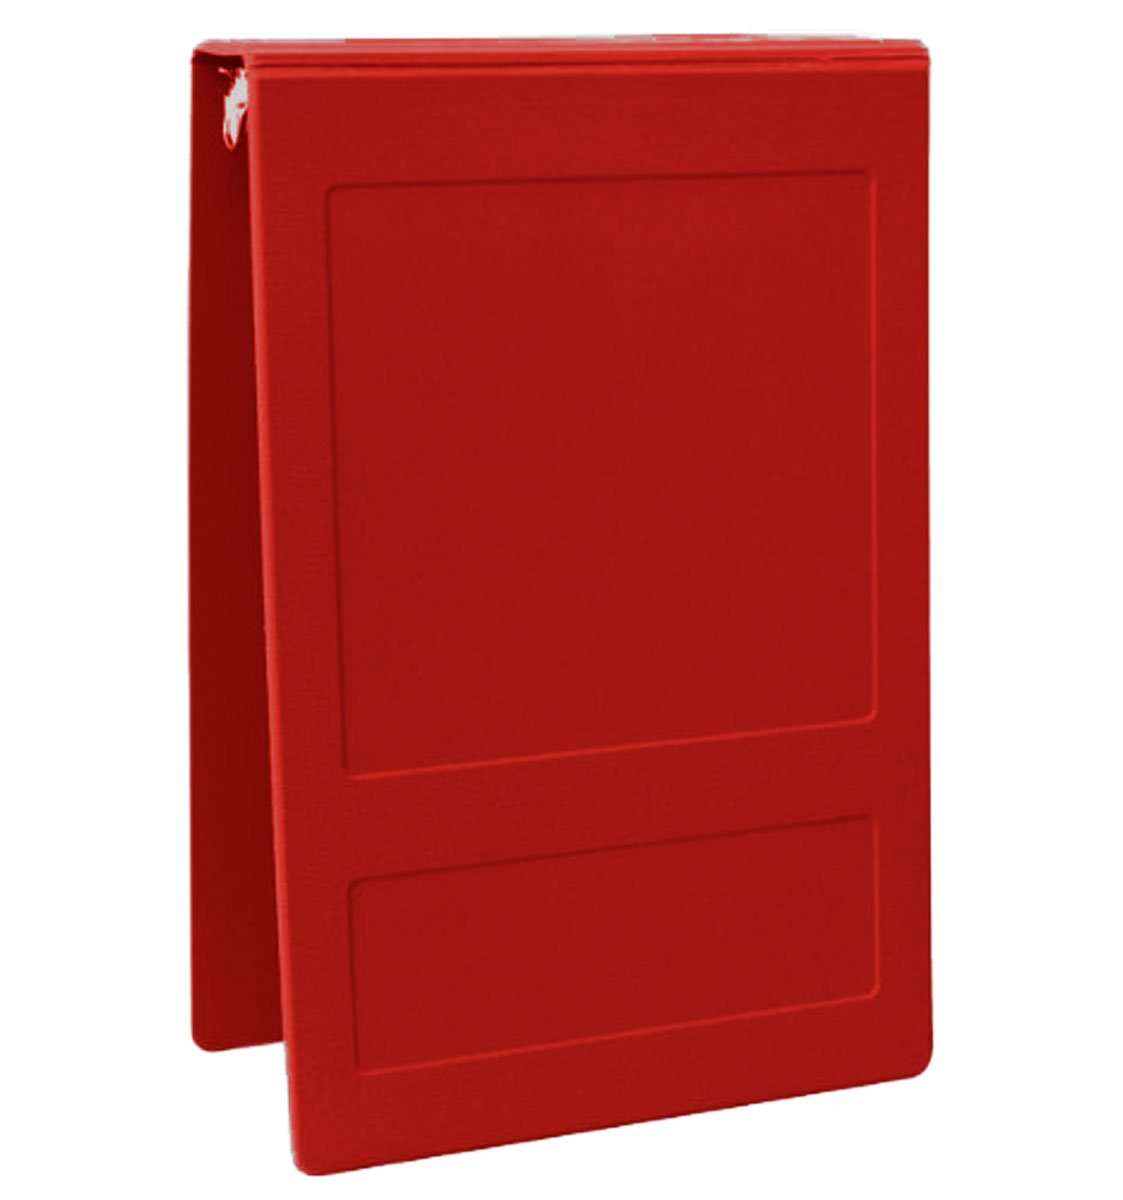 Ruby Top Open 2 Inch Molded Medical Ring Binder